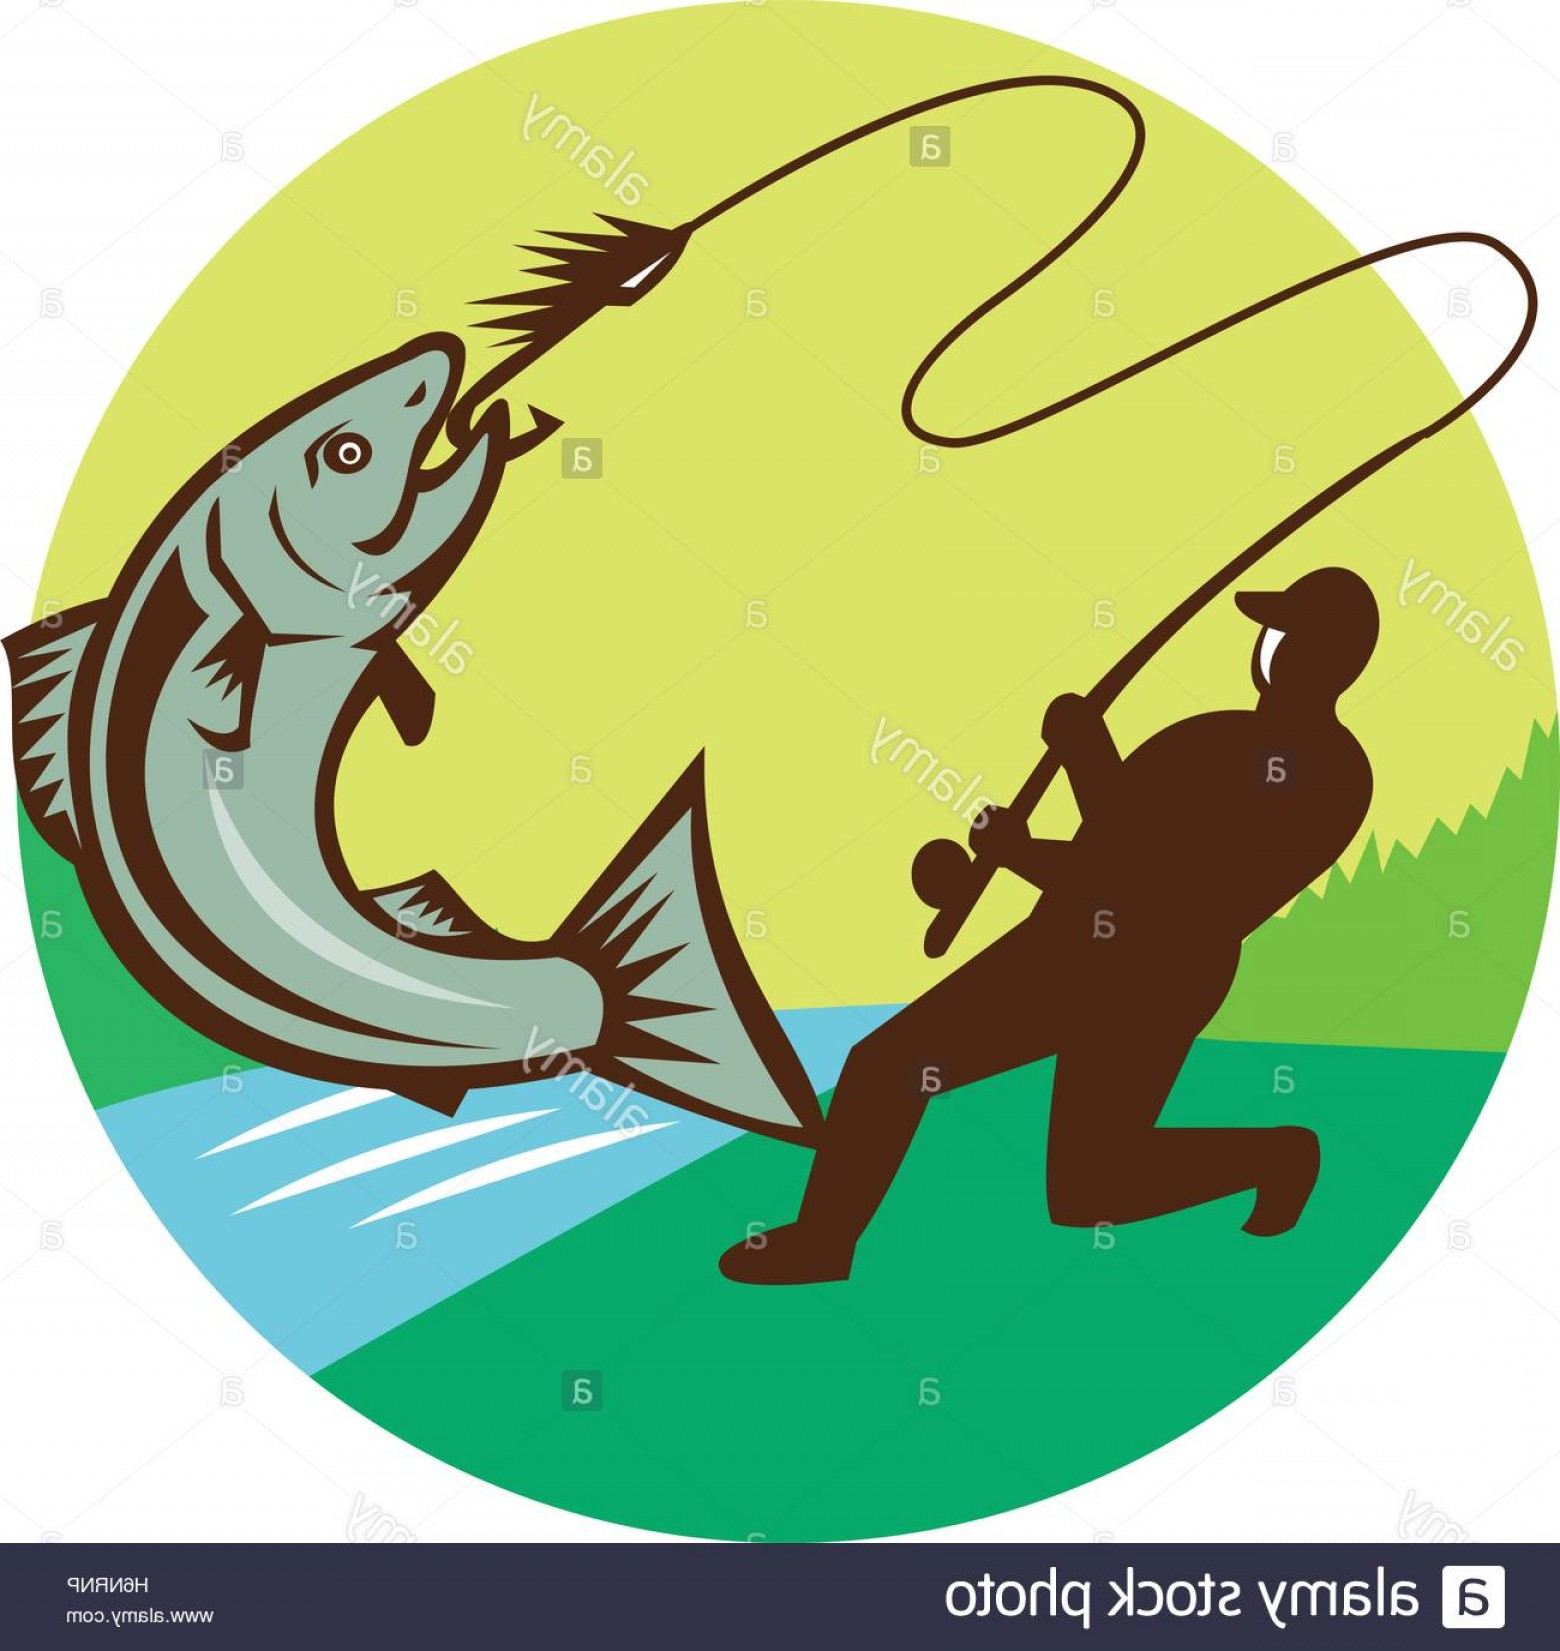 Detailed Vector Art Fly Fisherman: Stock Photo Illustration Of A Fly Fisherman Fishing Casting Rod And Reel Hooking